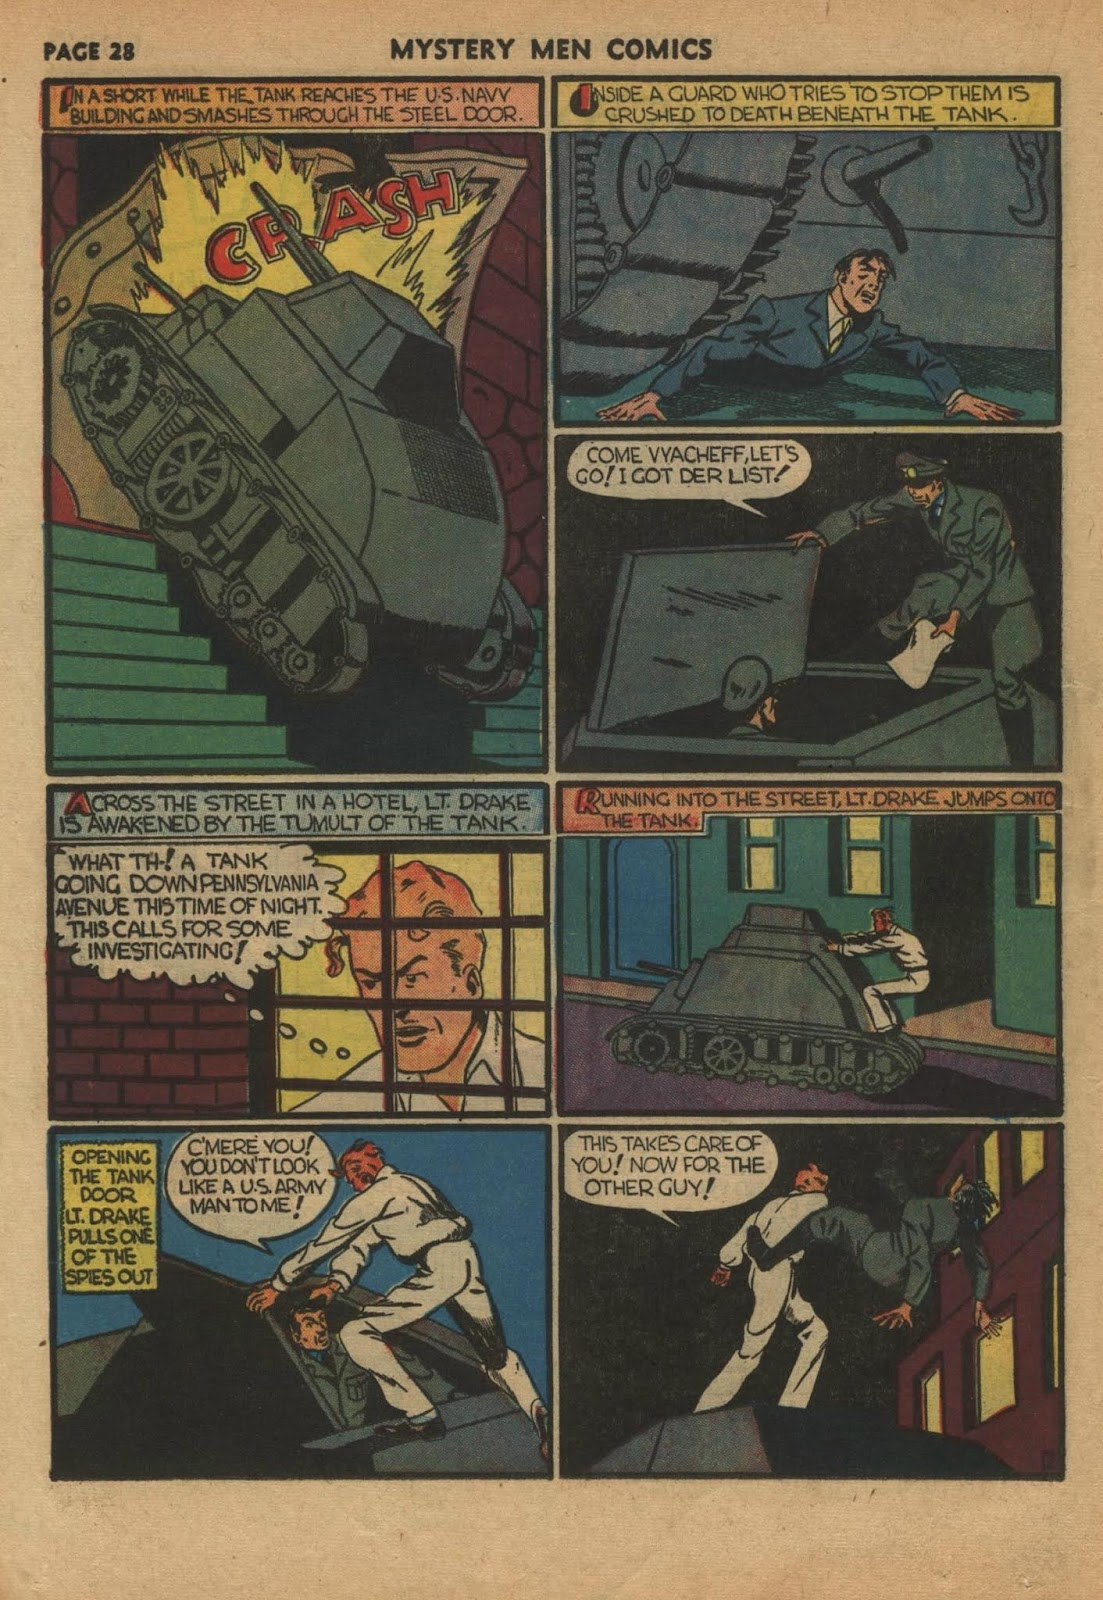 Mystery Men Comics issue 24 - Page 30